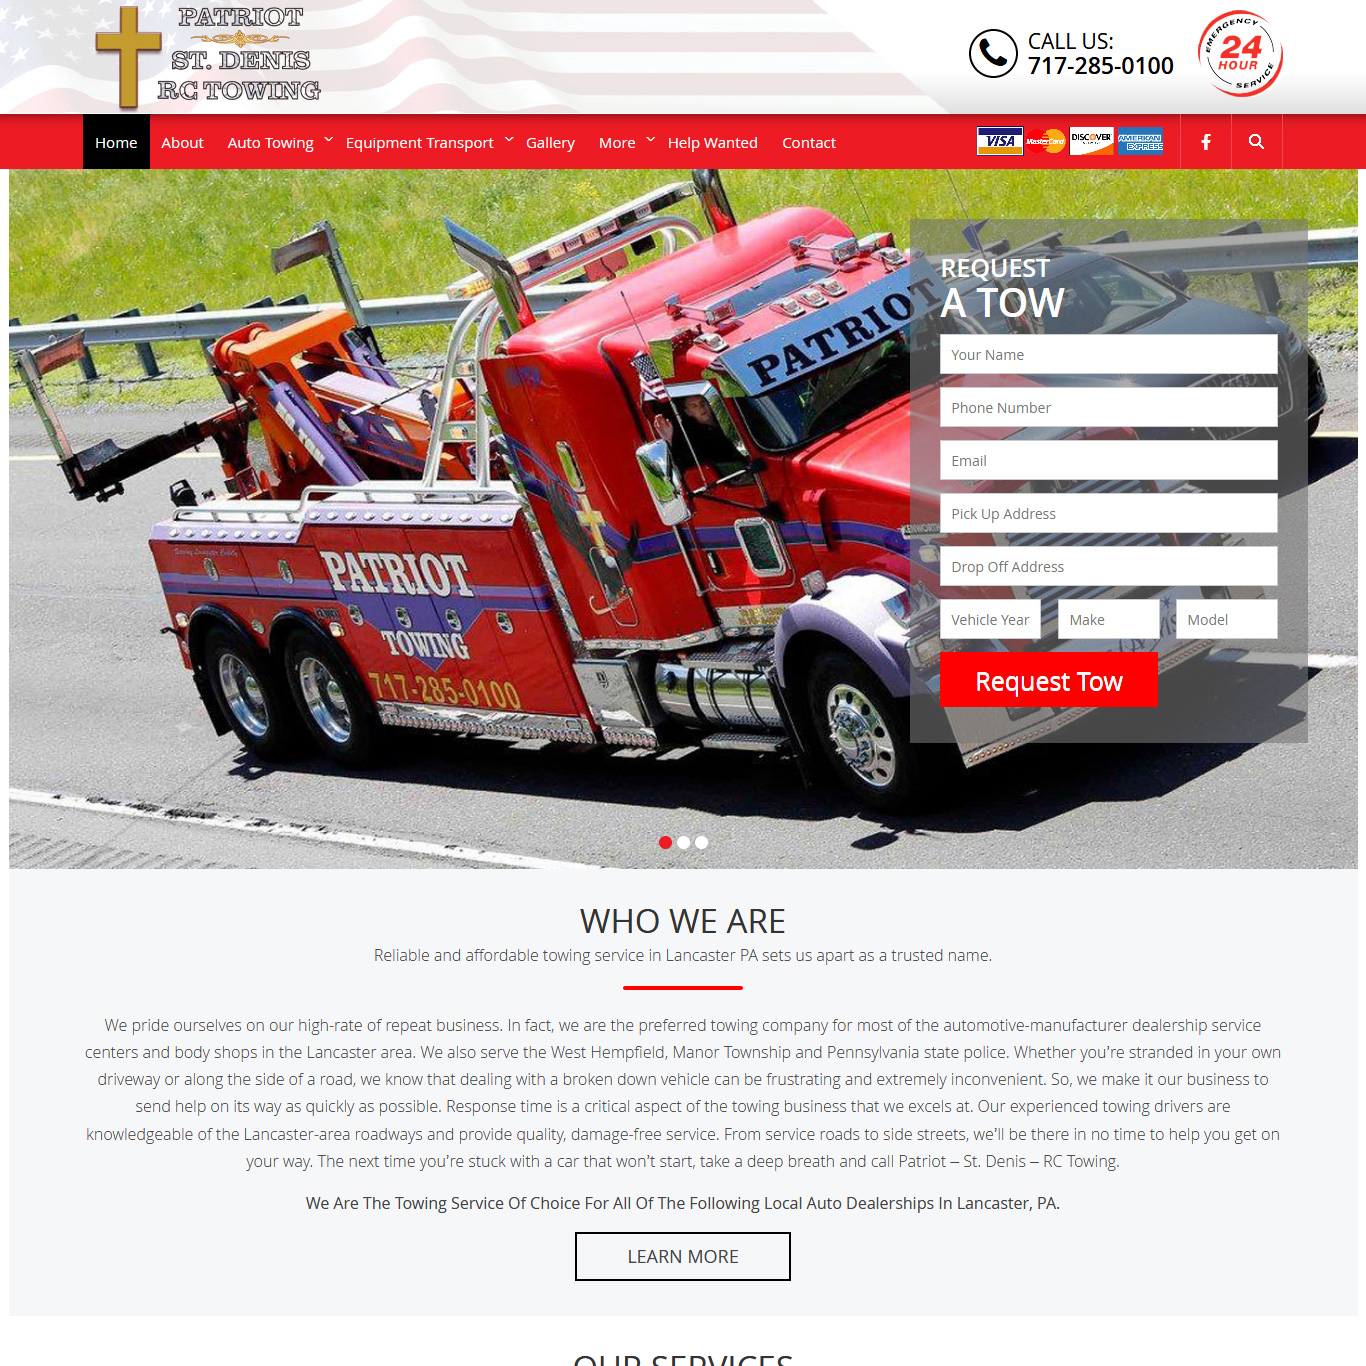 Patriot St. Dennis RC Towing - towing